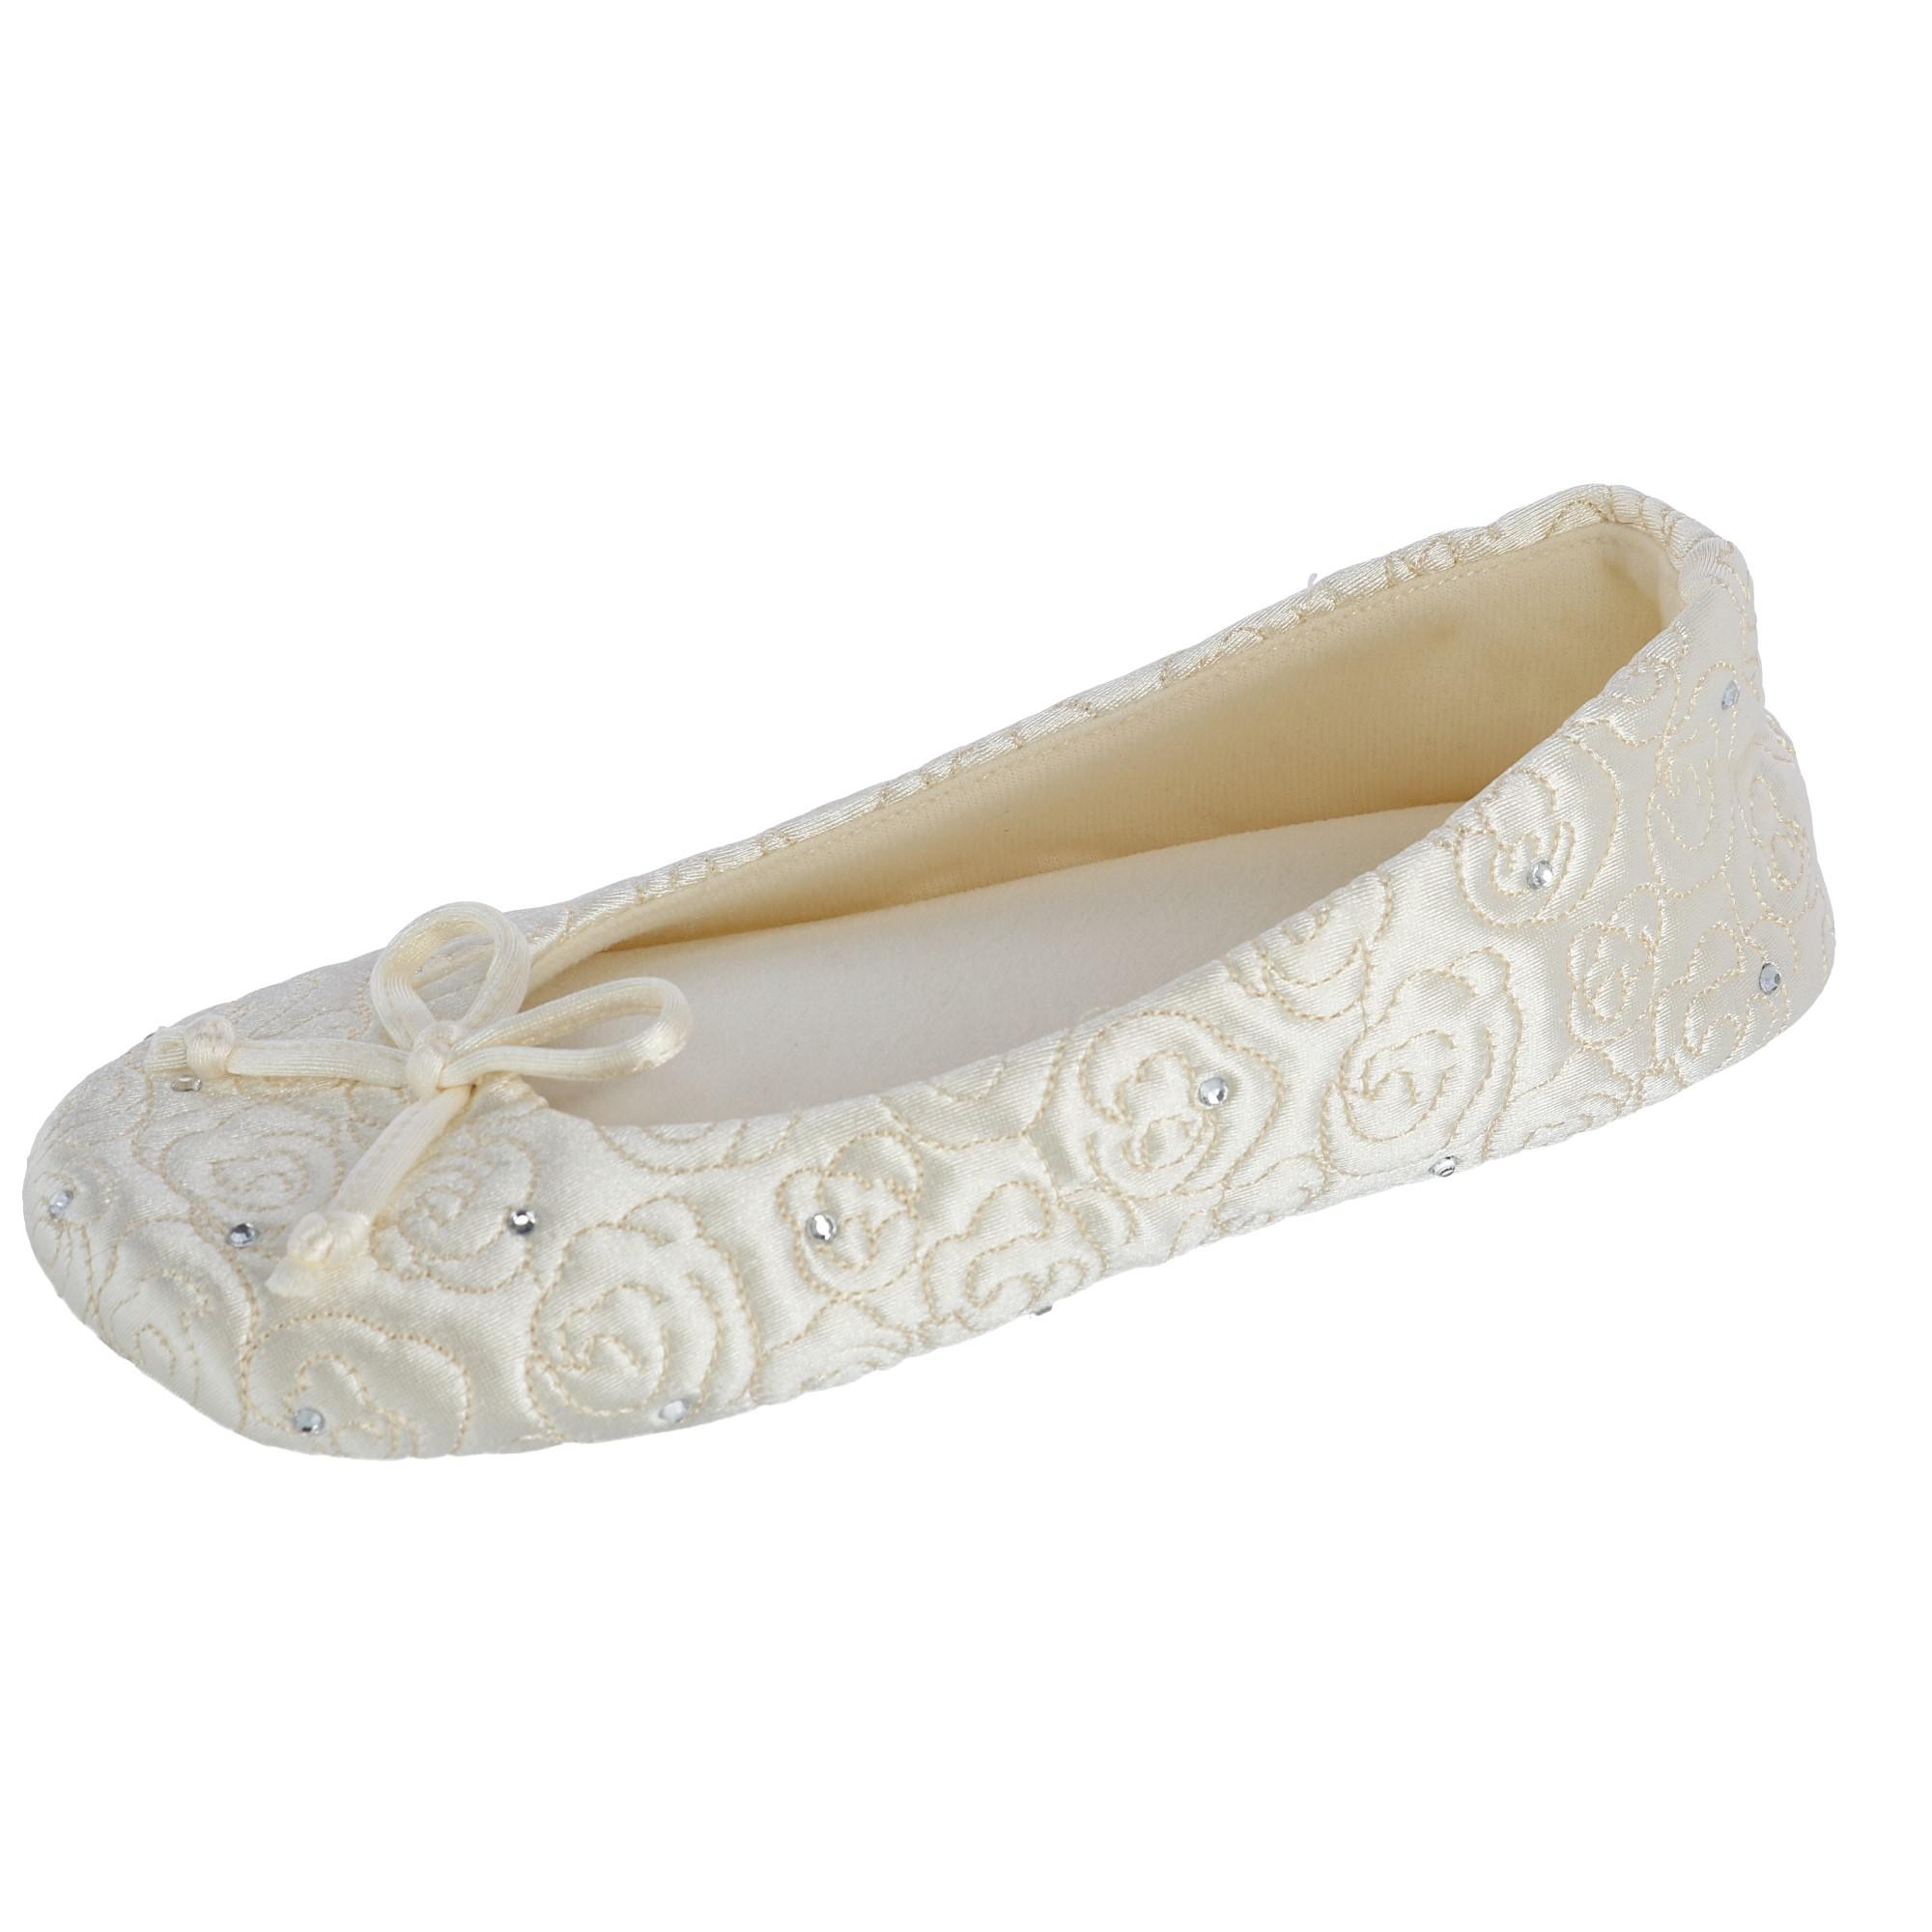 Isotoner Women's Terry Lined Rose Quilted Ballerina Slipp...